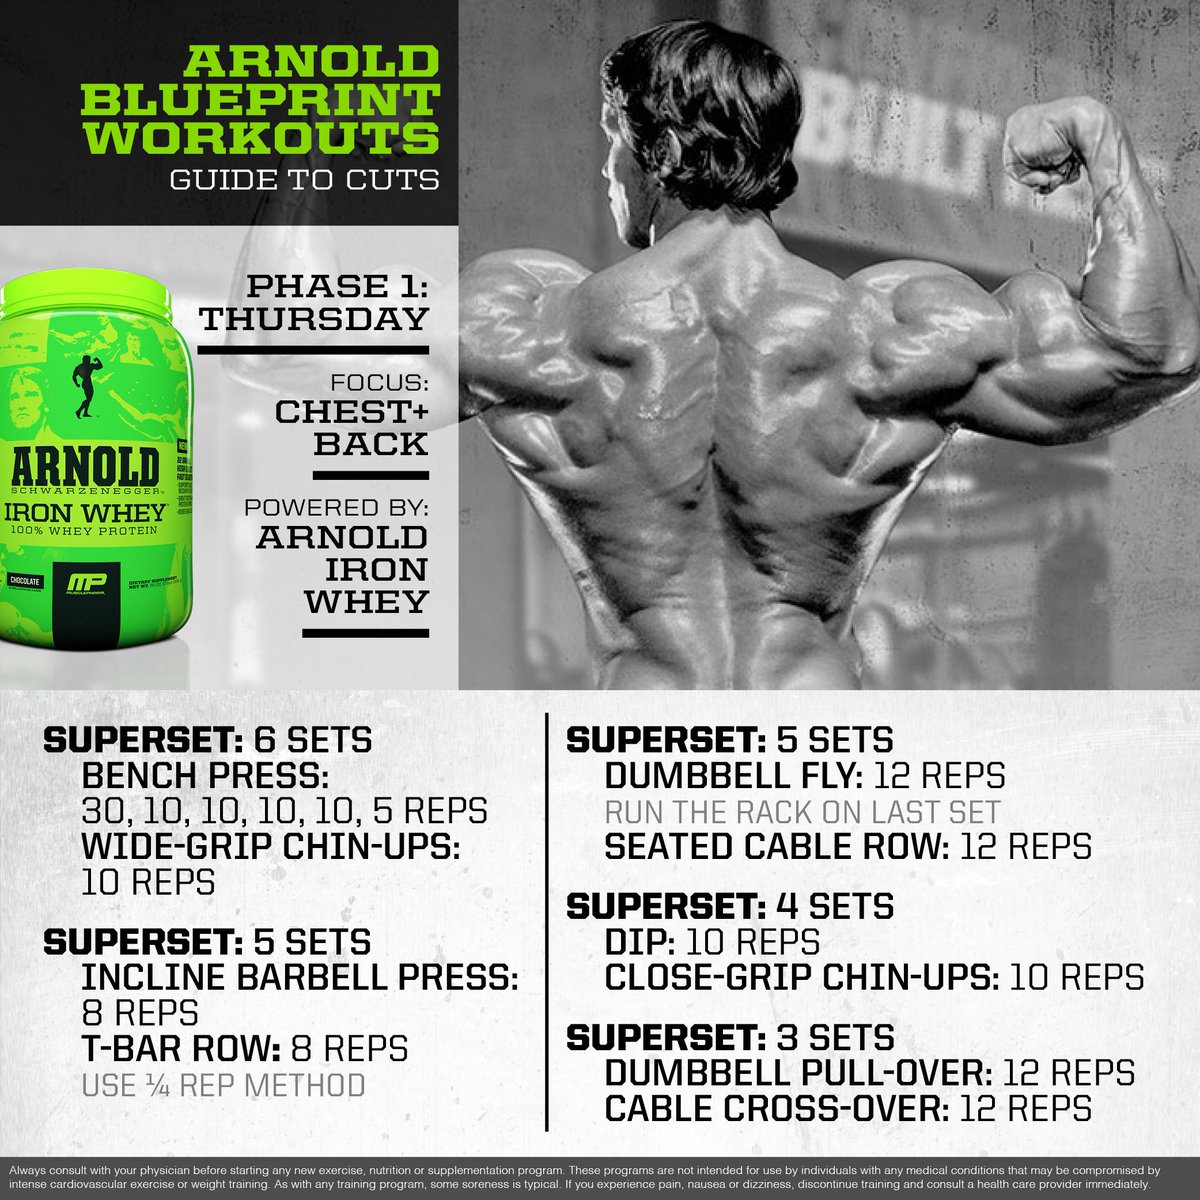 Musclepharm on twitter mp workout of the day arnold musclepharm on twitter mp workout of the day arnold schwarzenegger blueprint to cut chestback workout powered by ironwhey httptlgpa1qepht malvernweather